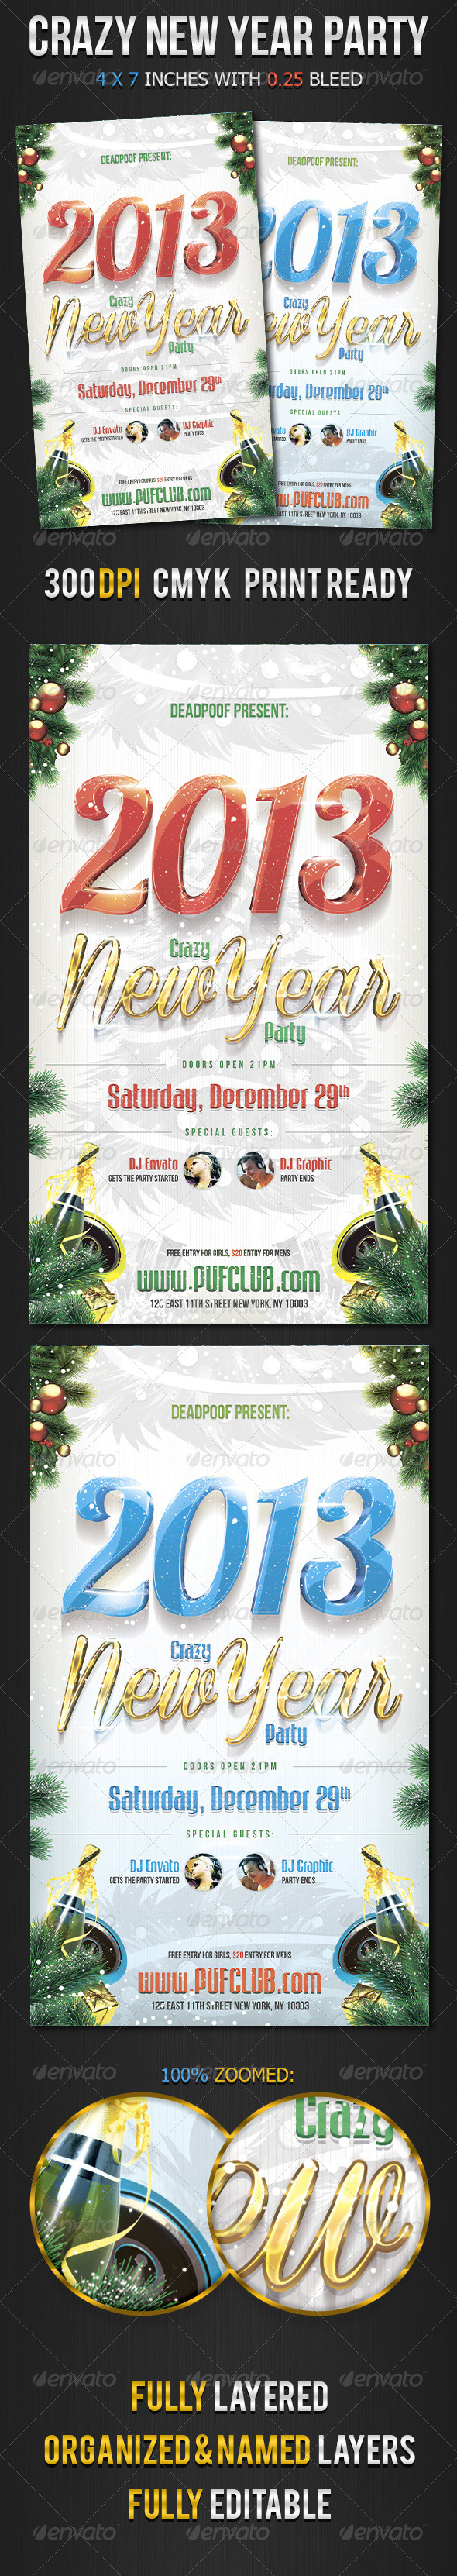 Crazy New Year Party Flyer - Holidays Events